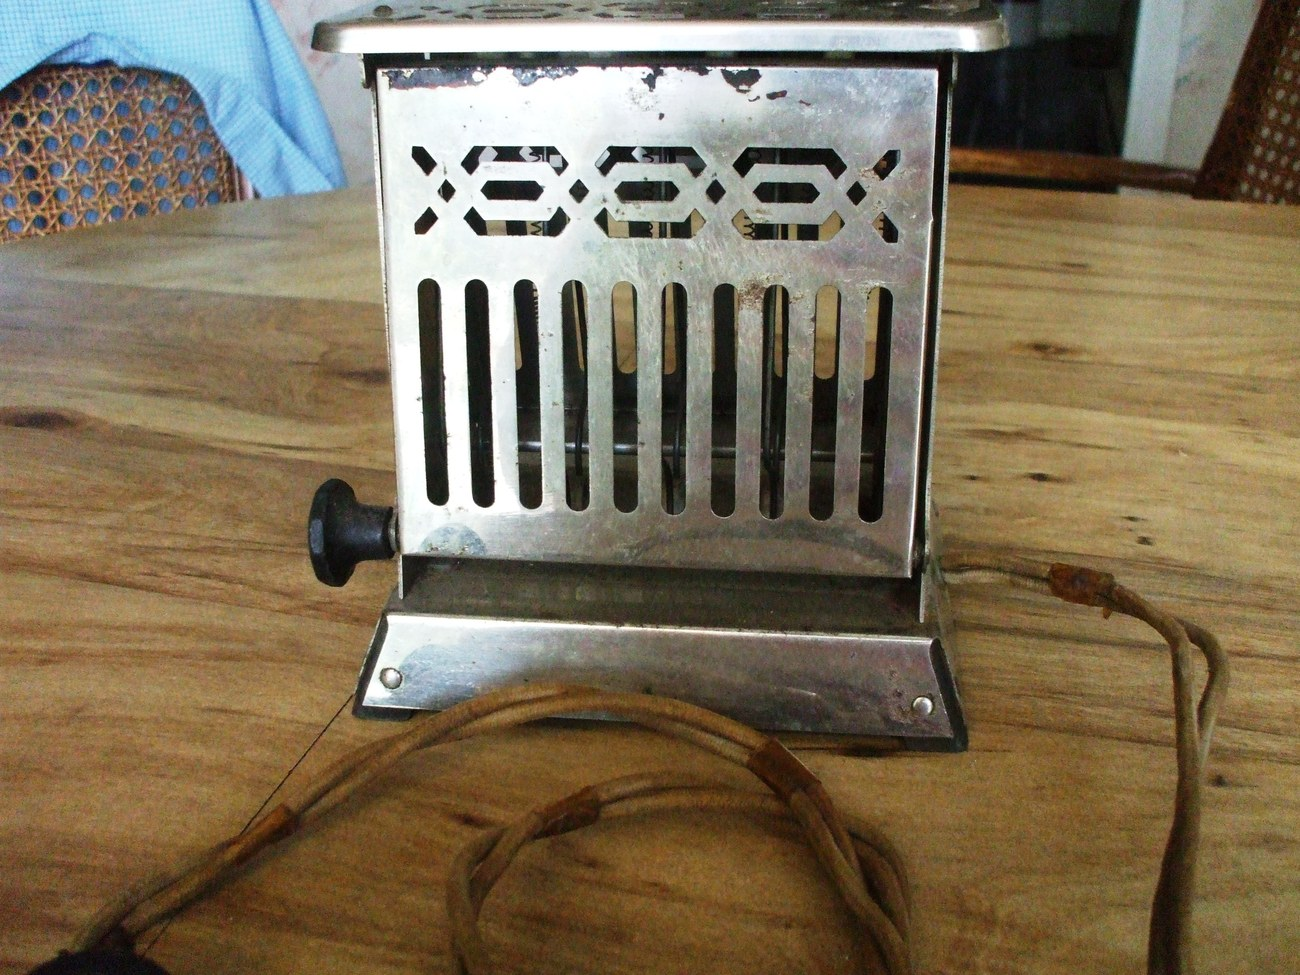 Antique Electric Toasters ~ Click picture to enlarge